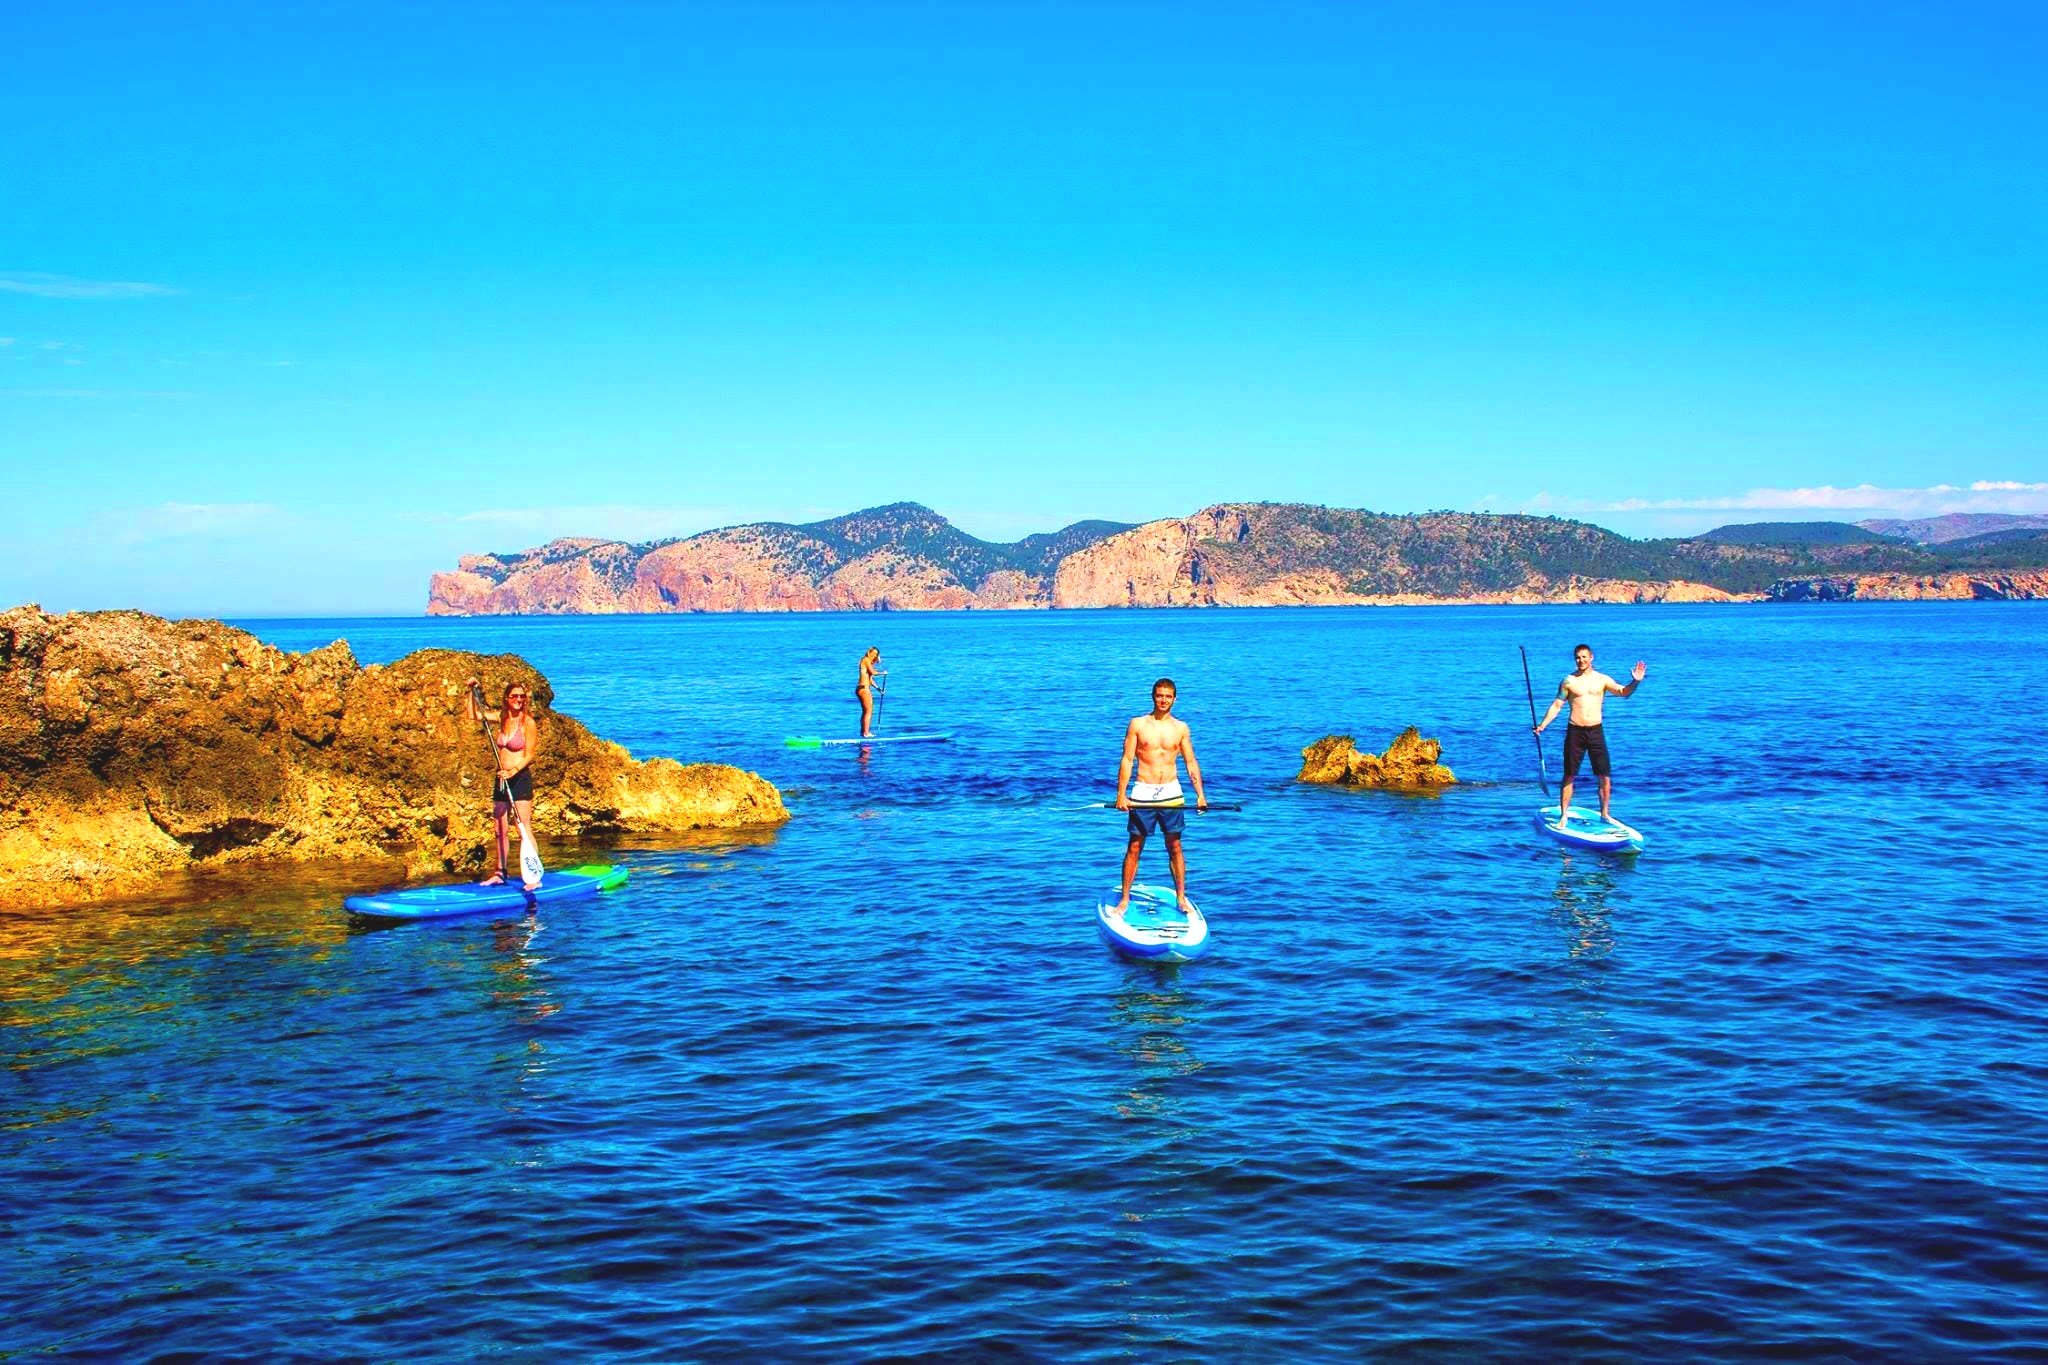 Some guys are taking part in a SUP tour in Mallorca.